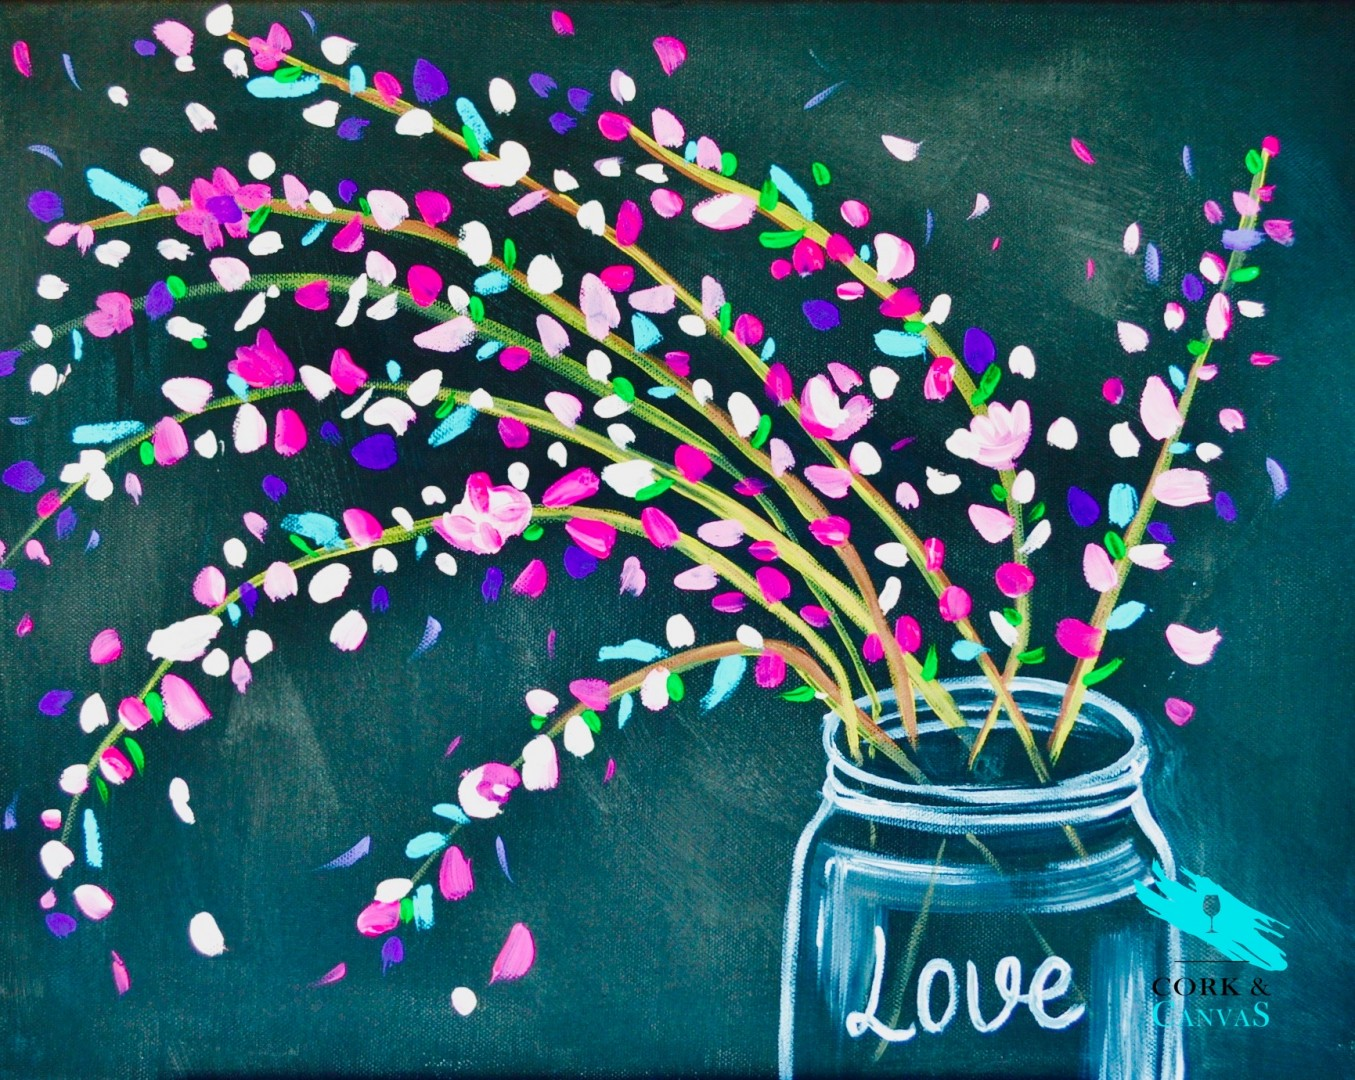 Jar of Love paint and sip